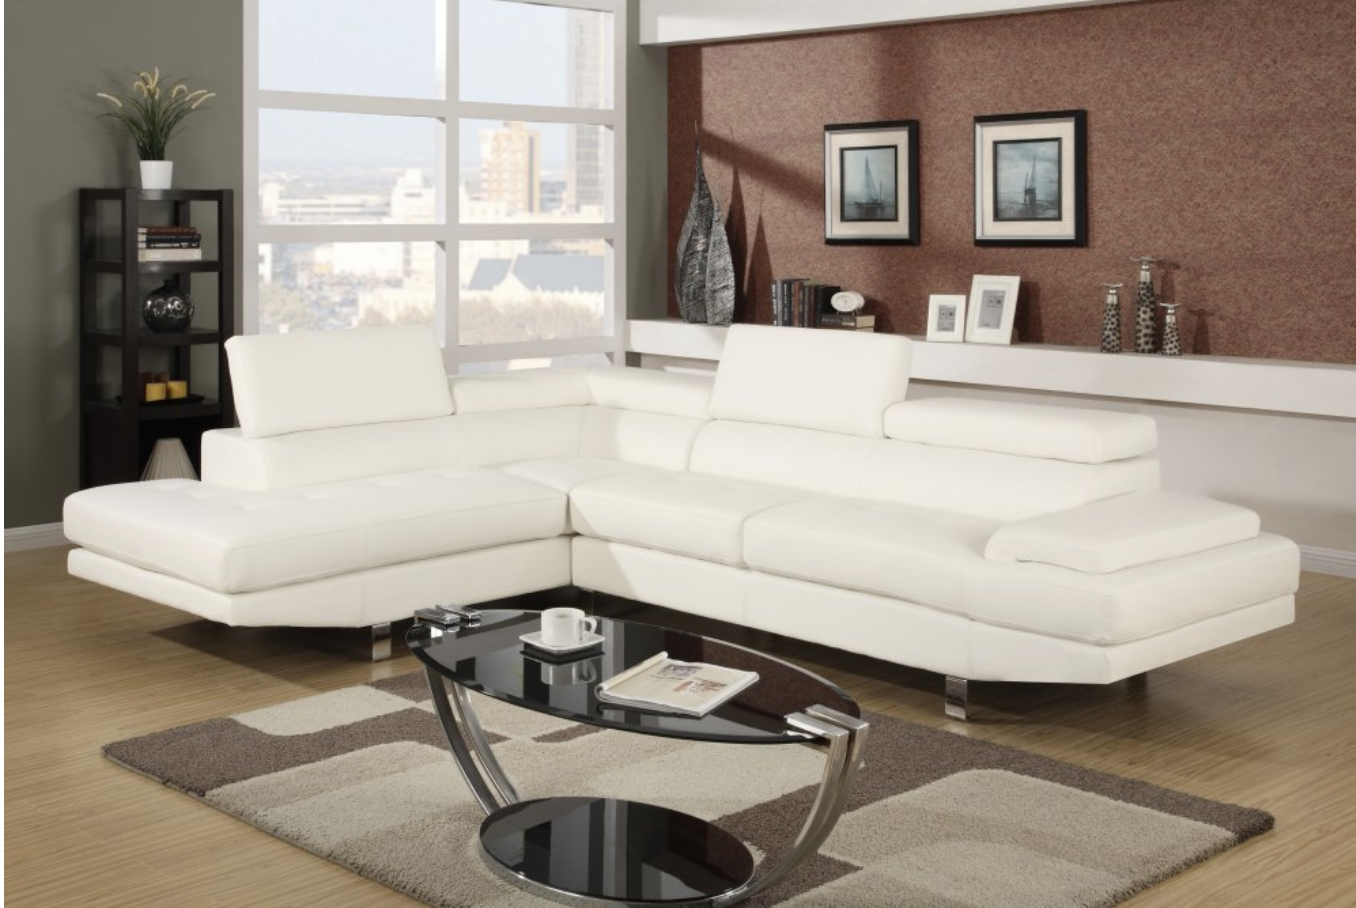 75 Modern Sectional Sofas For Small Spaces (2018) With Well Liked 110X90 Sectional Sofas (Gallery 18 of 20)